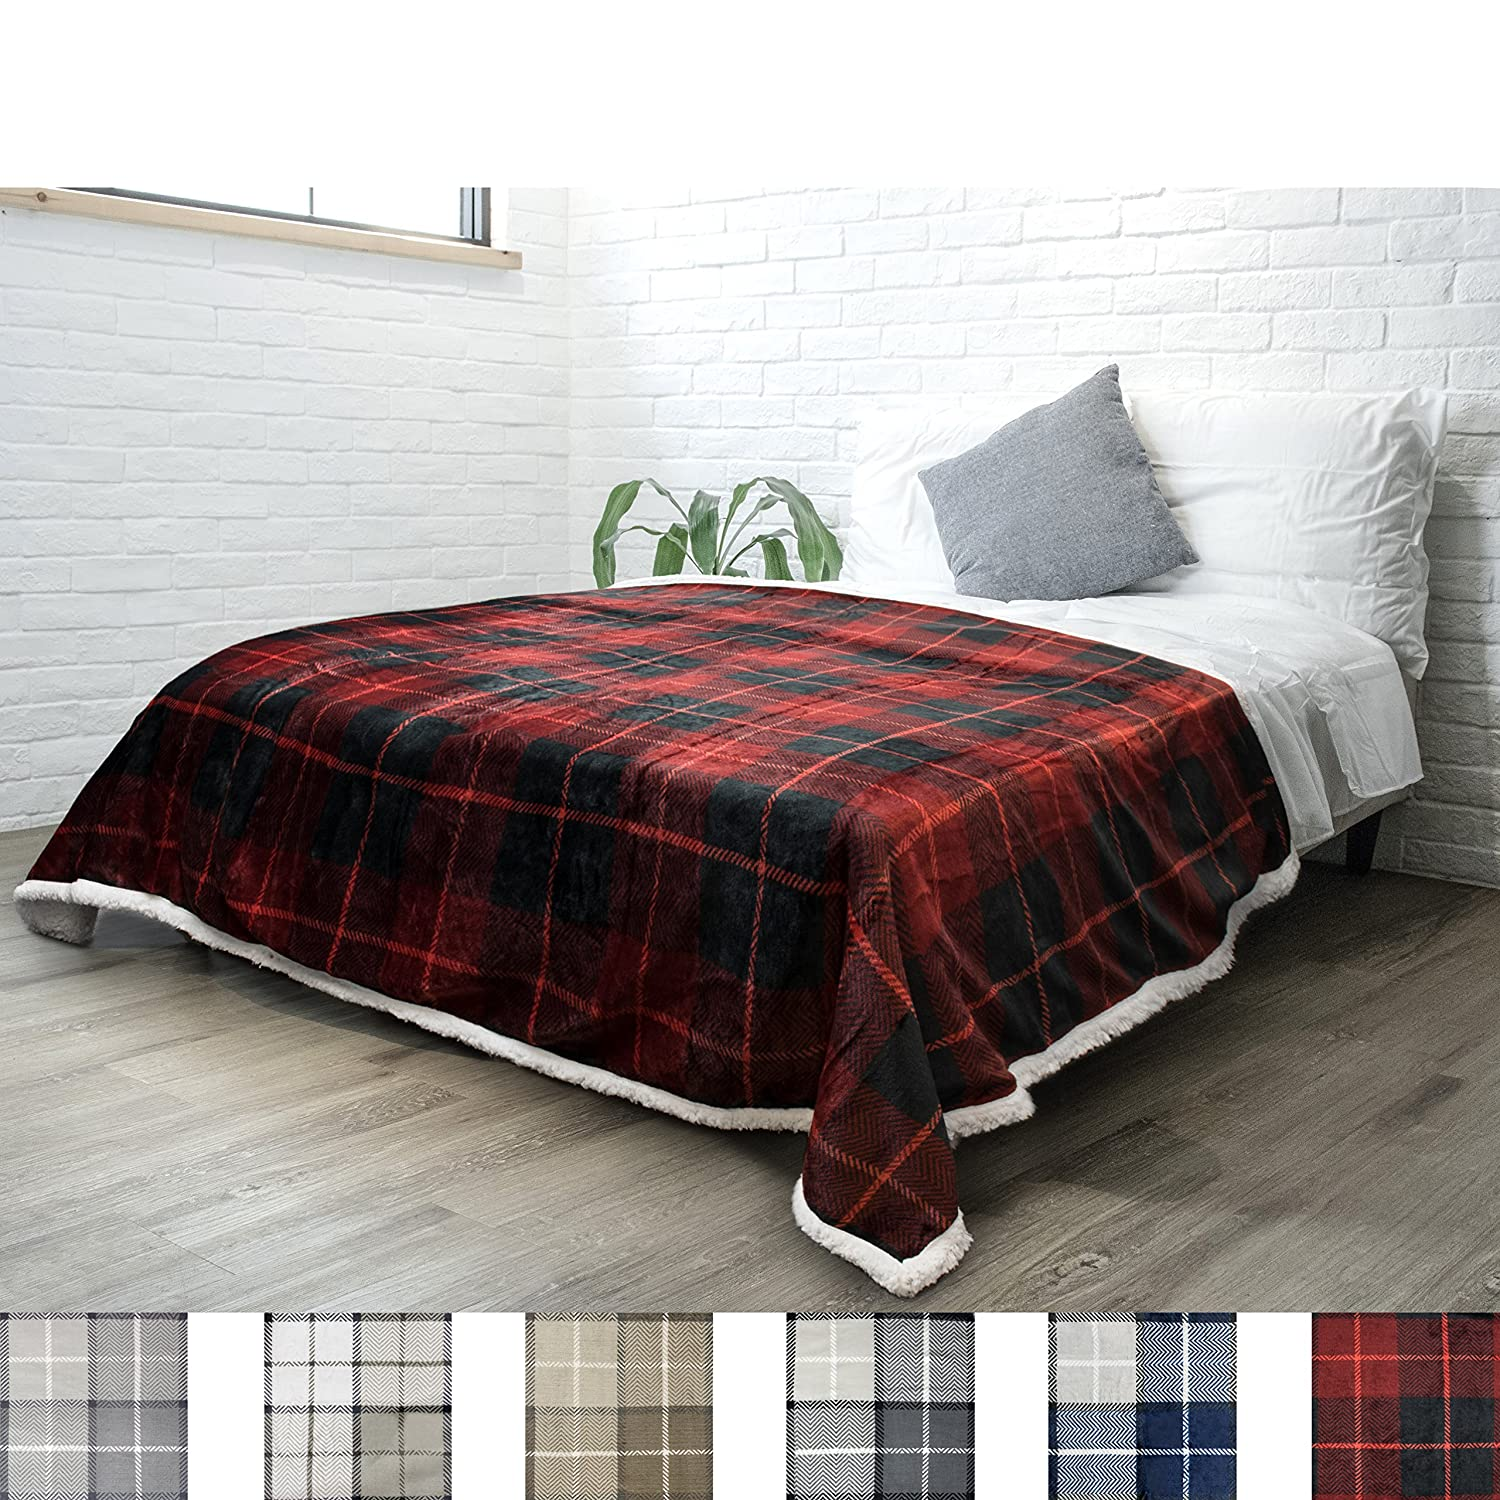 PAVILIA Premium Plaid Sherpa Fleece Bed Blanket Twin Size | Super Soft, Cozy, Plush, Lightweight Microfiber, Reversible Bed Blanket for Couch, Sofa, Bed, All Season (Red, 60 x 80 Inches)